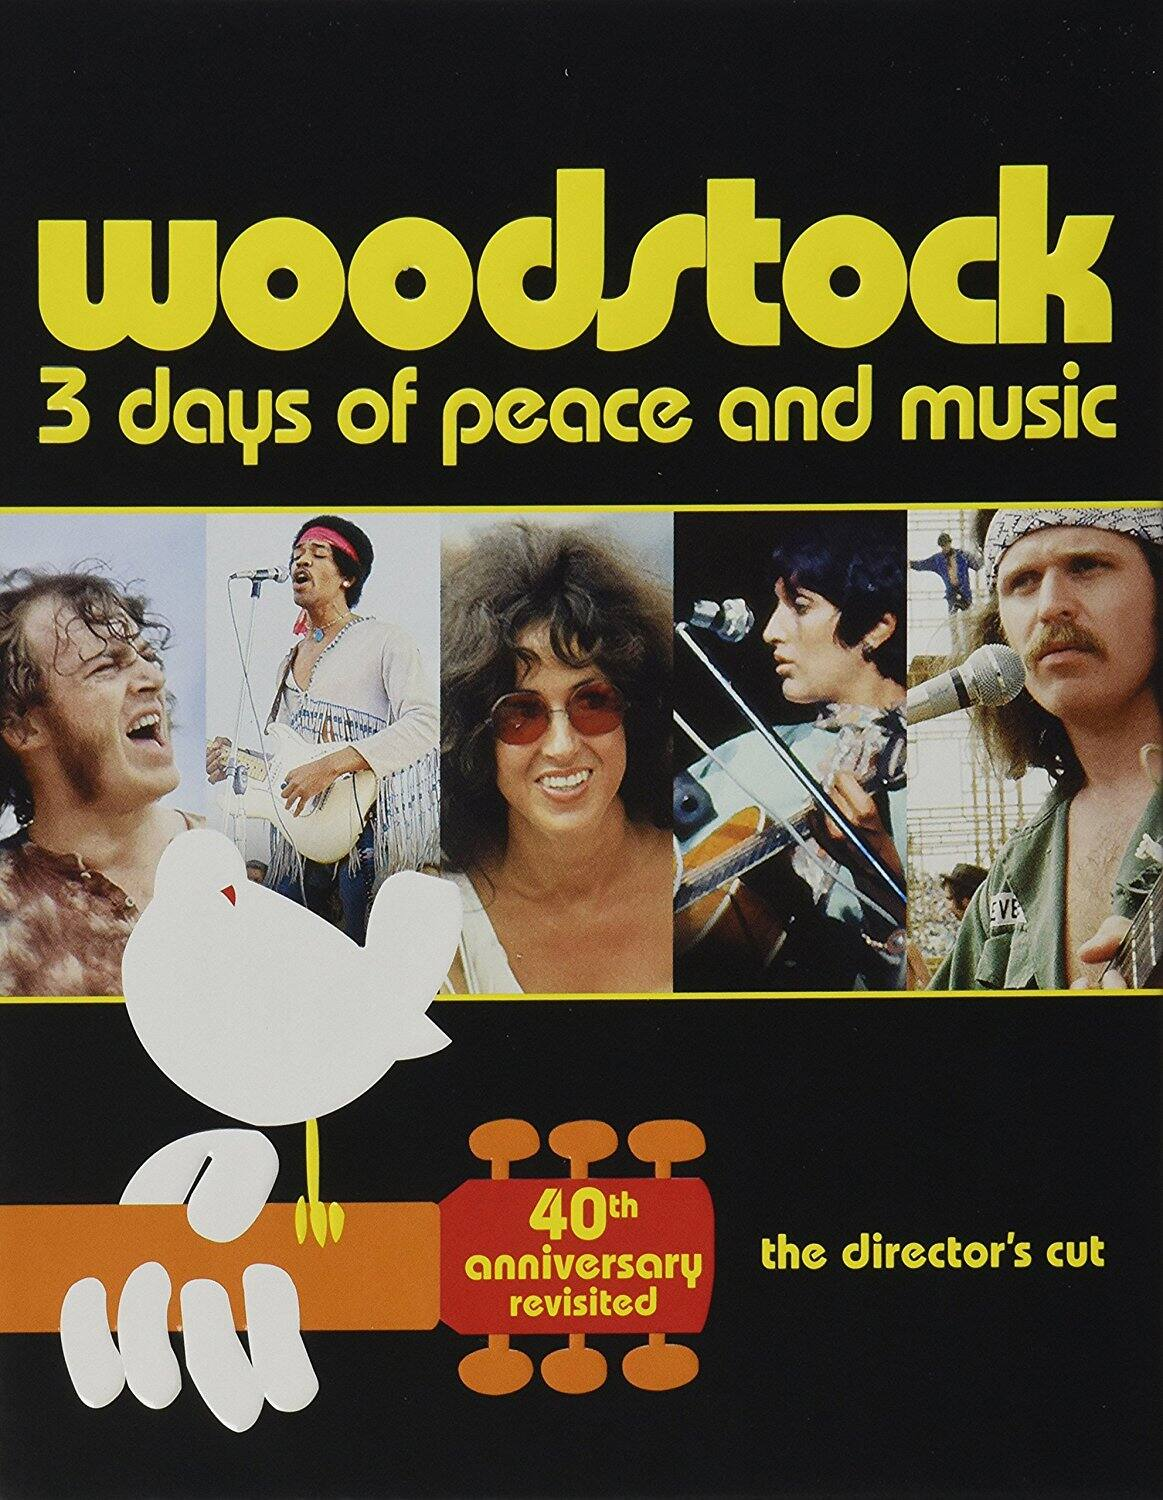 Woodstock 3 Days of Peace & Music 40th Anniversary Limited Edition Revisited (3-Disc Blu-ray) $5 @ Amazon & Walmart